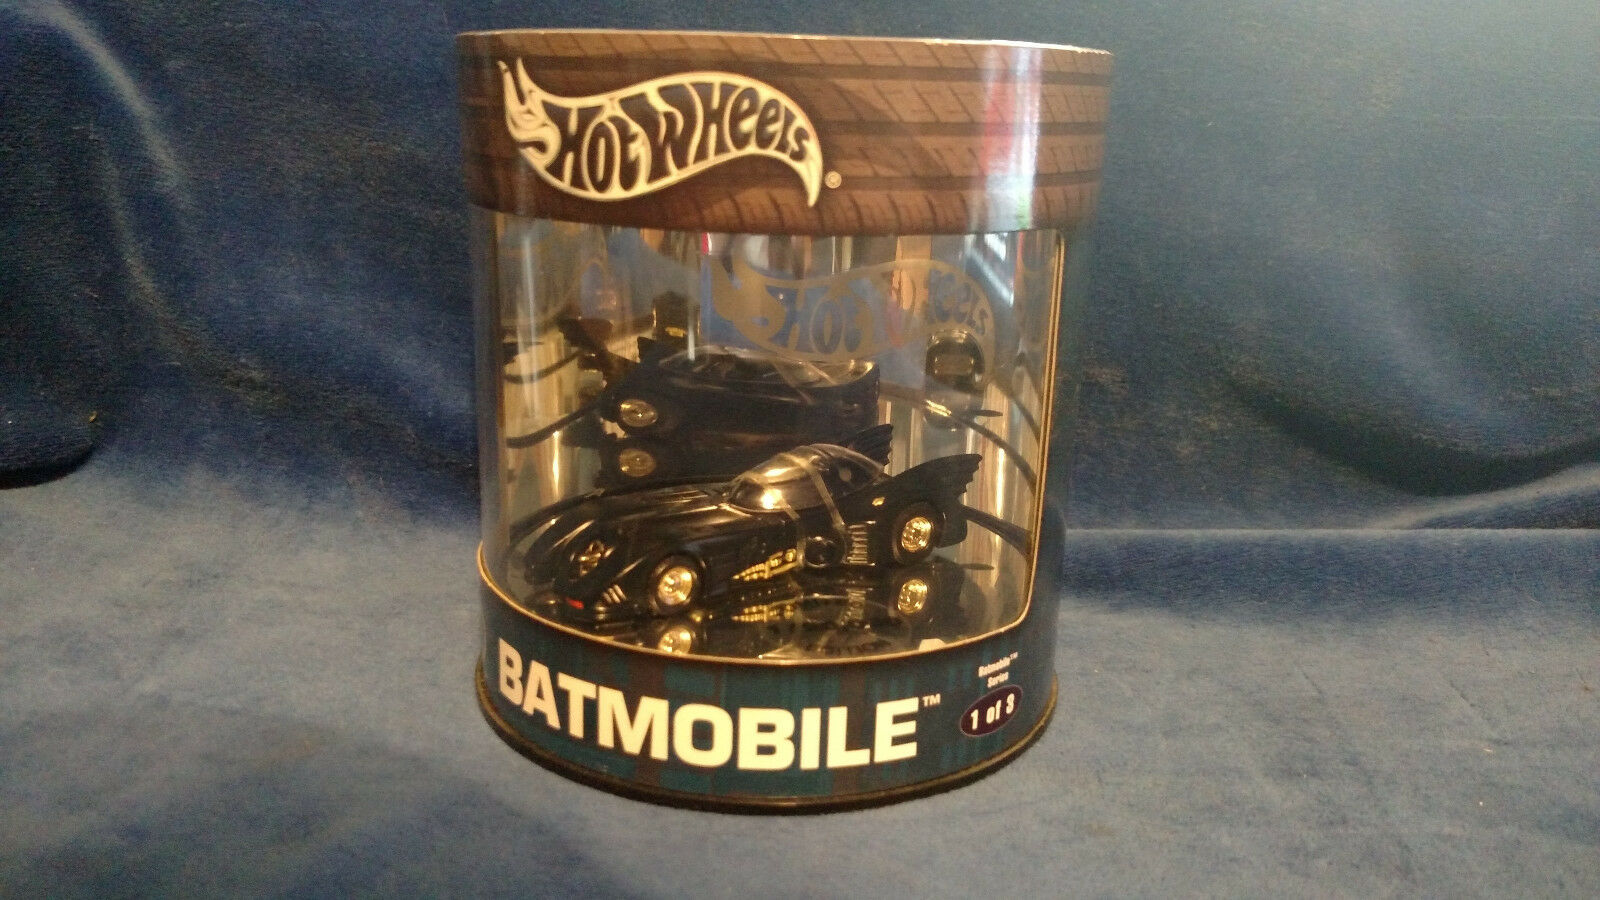 2004 Hot Wheels Batimóvil Set Completo De 3 Coches de edición limitada de petróleo